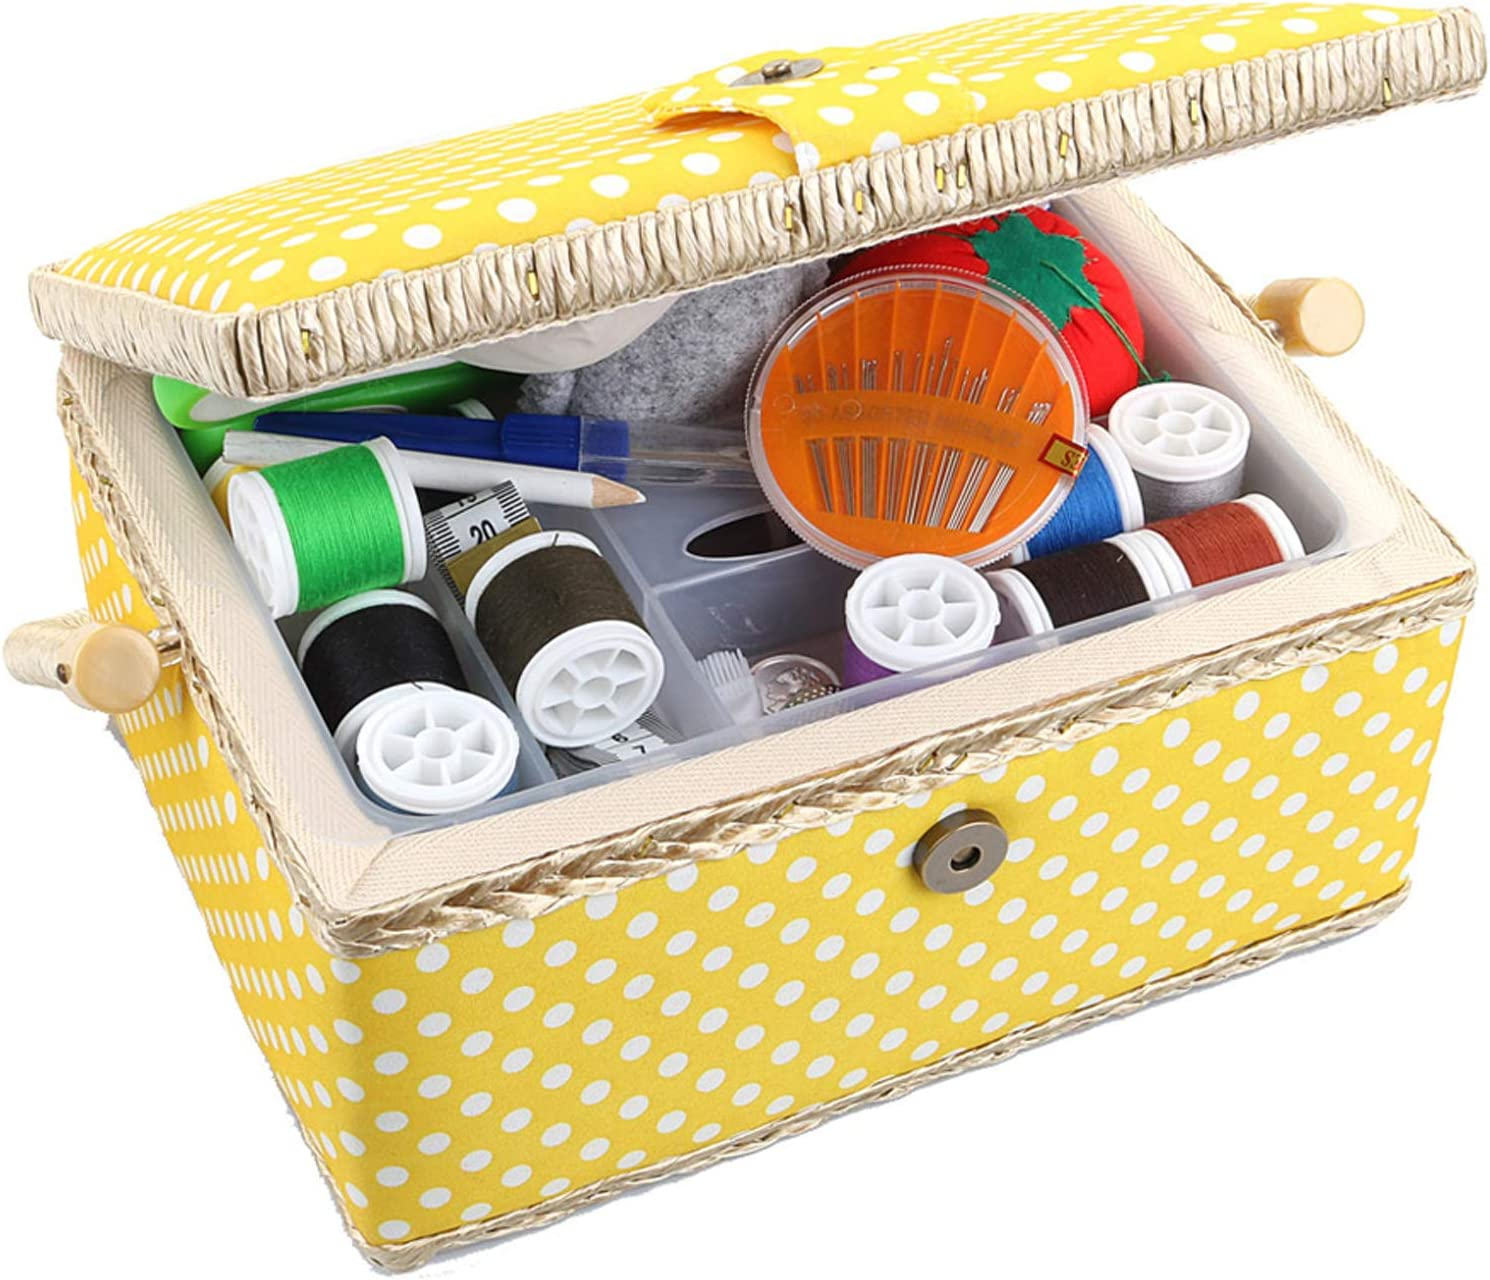 Wooden Sewing Basket with Accessories Sewing Box with Sewing Kit Ac Sewing Kit